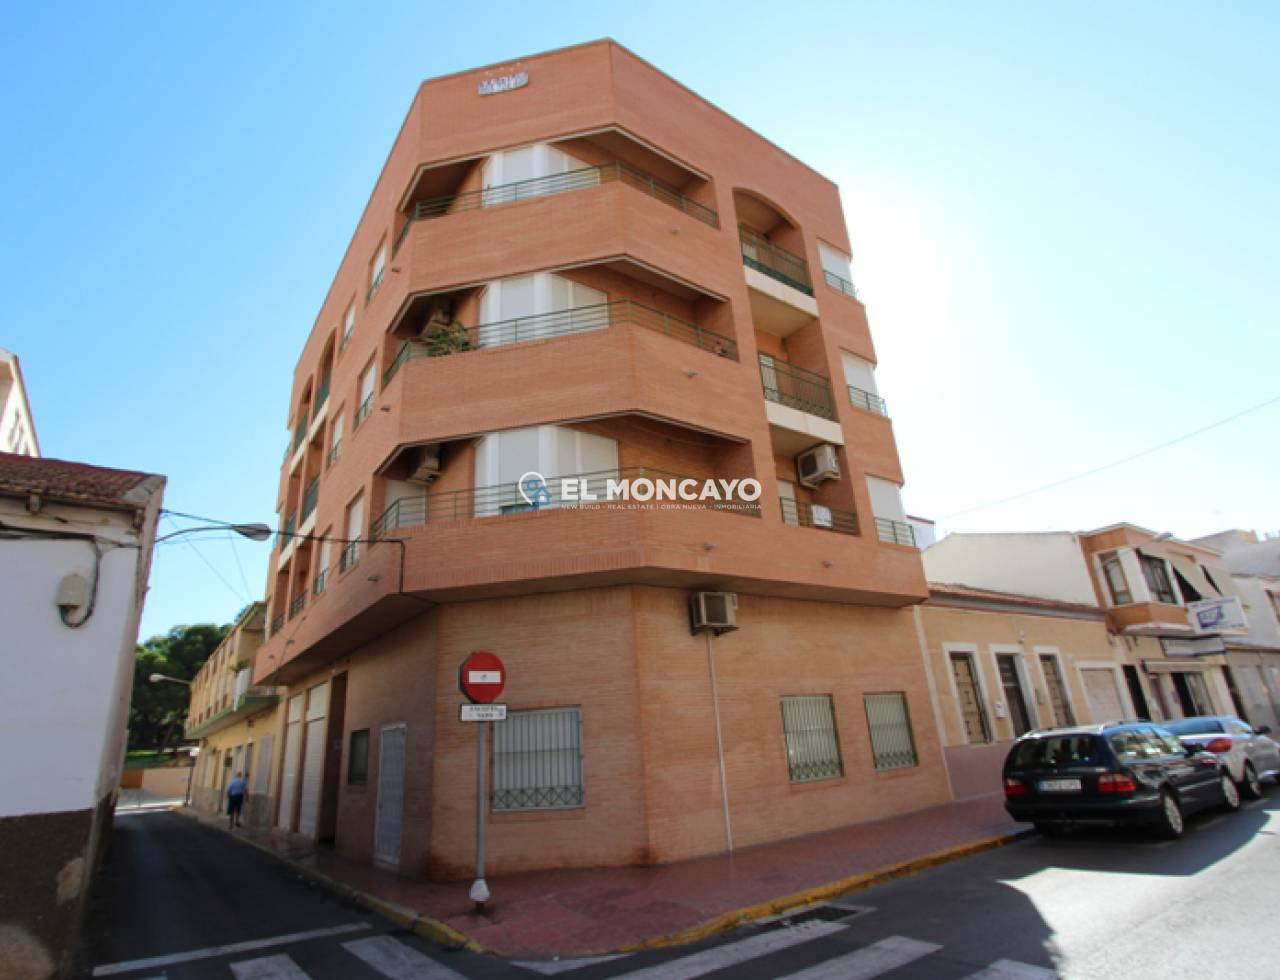 Verkoop - Penthouse - Guardamar del Segura - Downtown